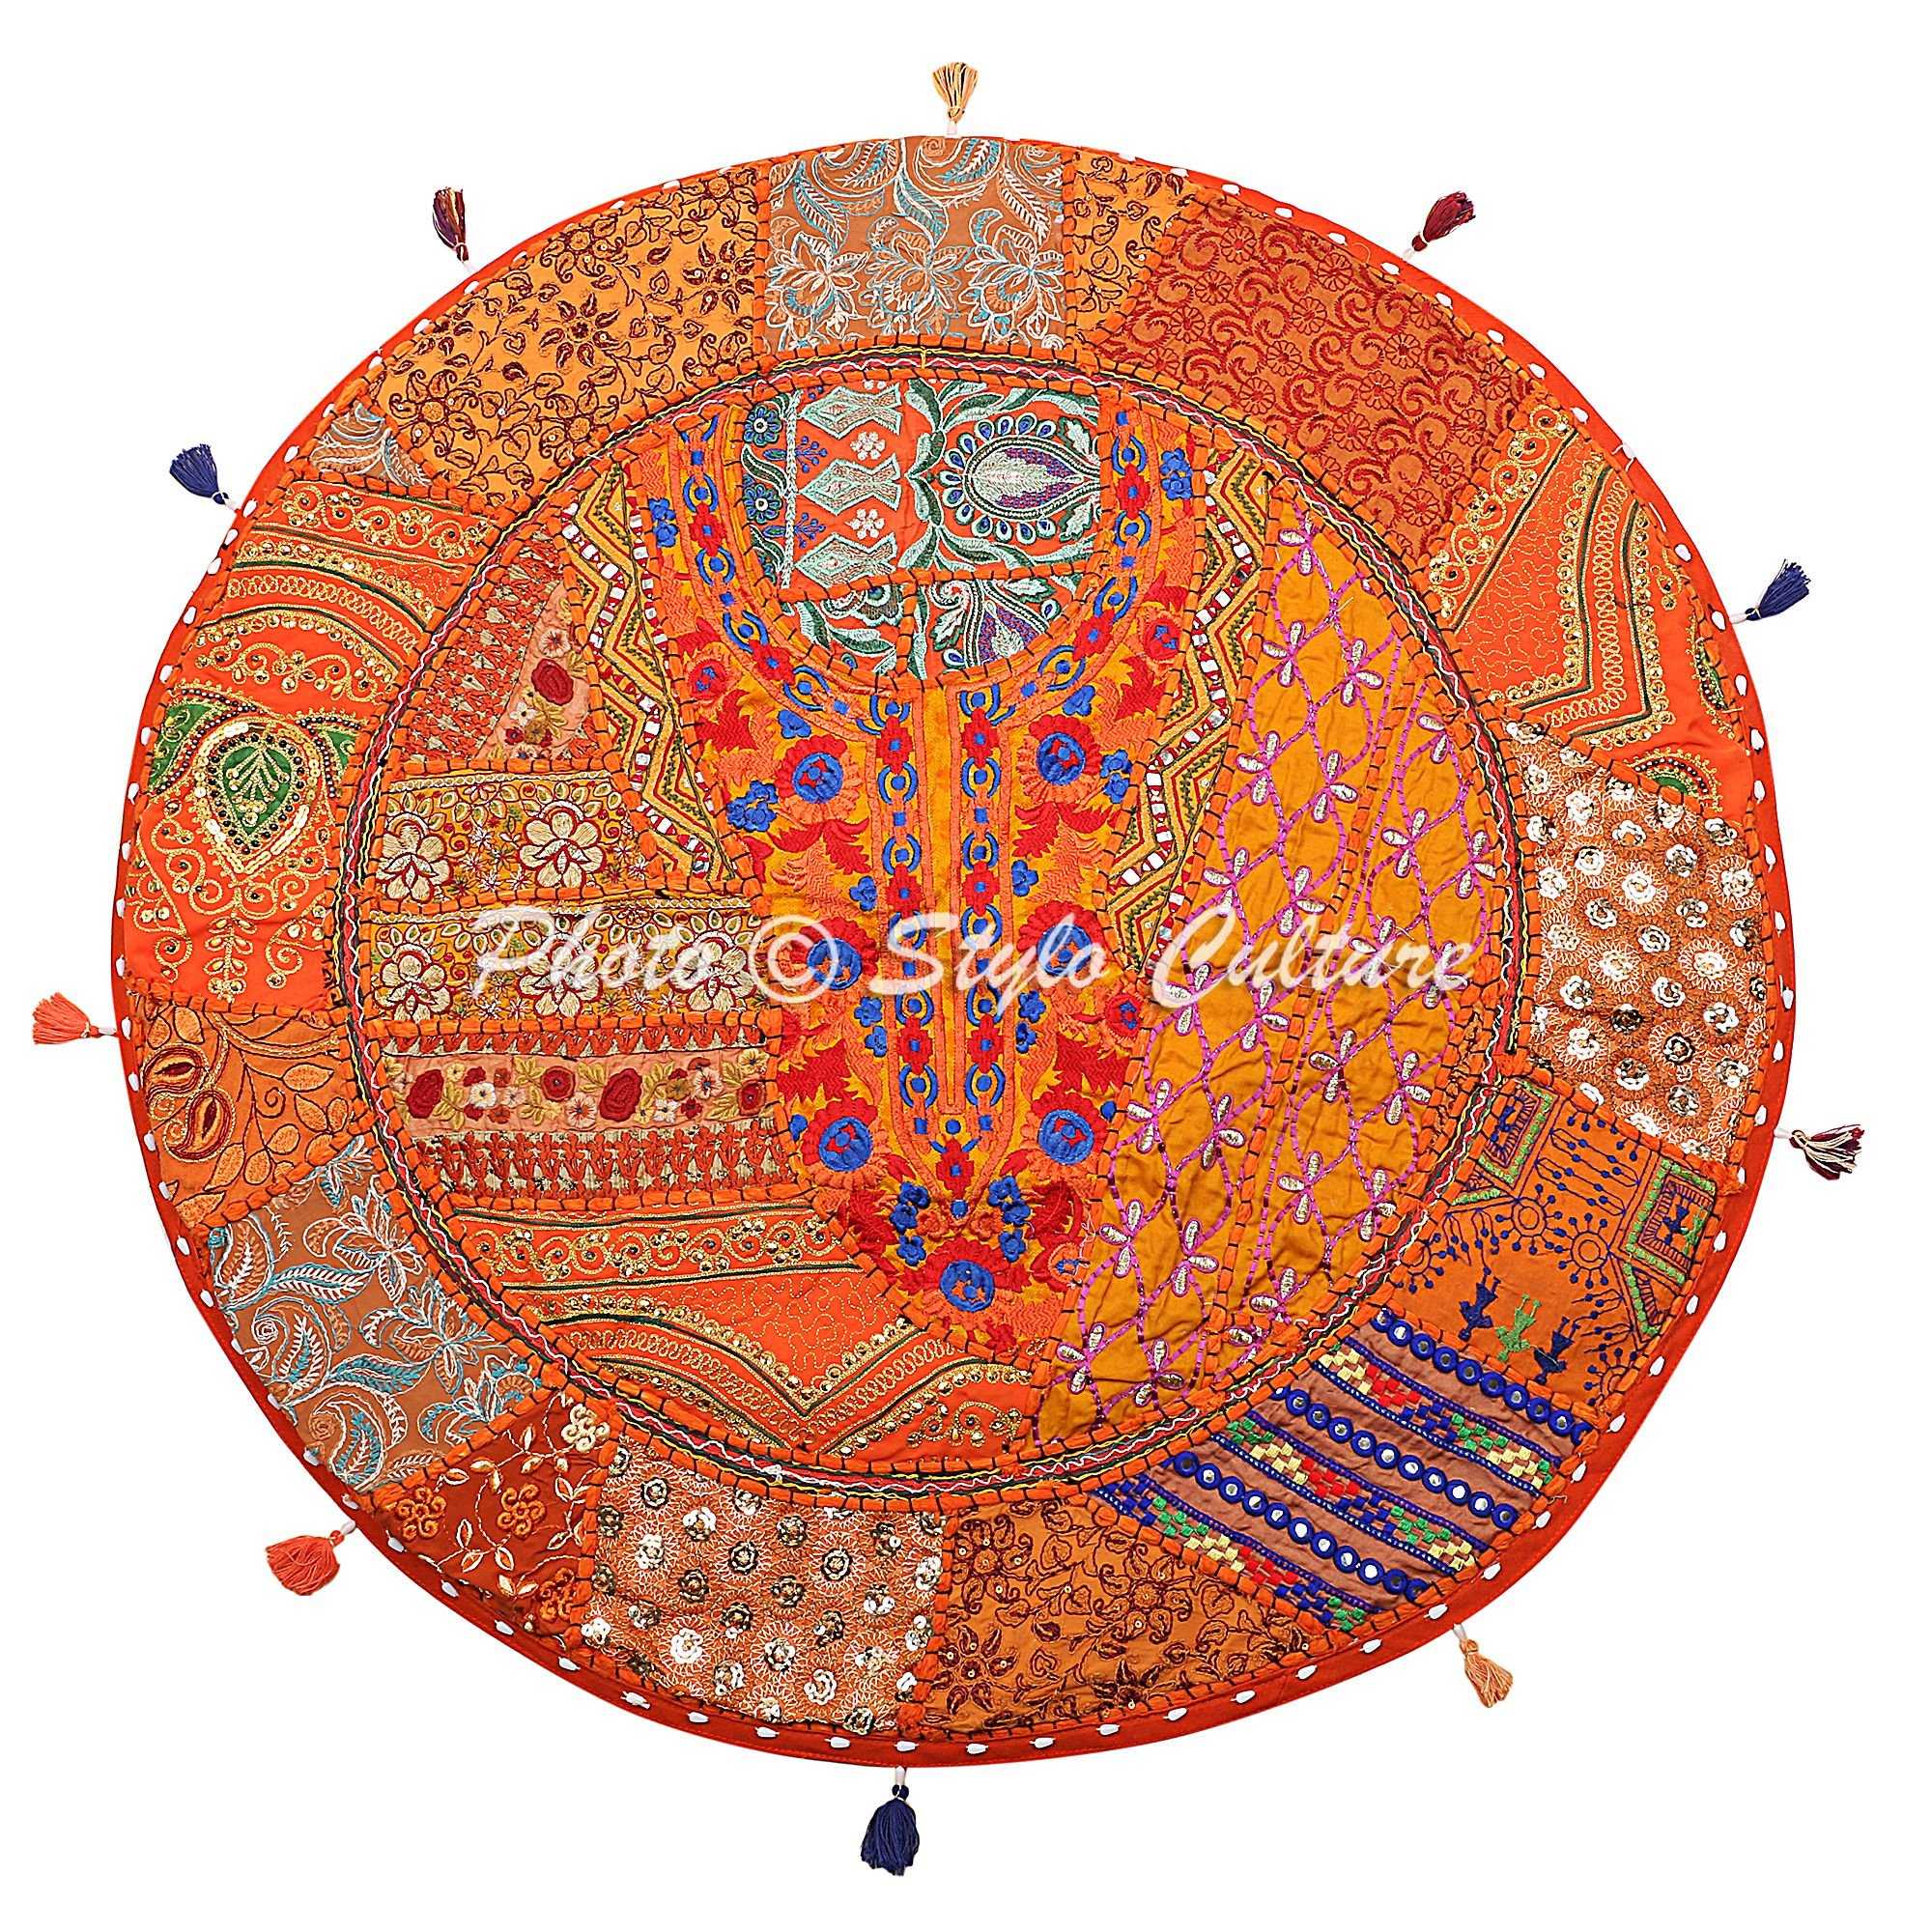 Stylo Culture Ethnic Cotton Large Floor Cushion Cover Seating Vintage Embroidered Patchwork Orange 32'' Indian Floor Pillow Cover by Stylo Culture